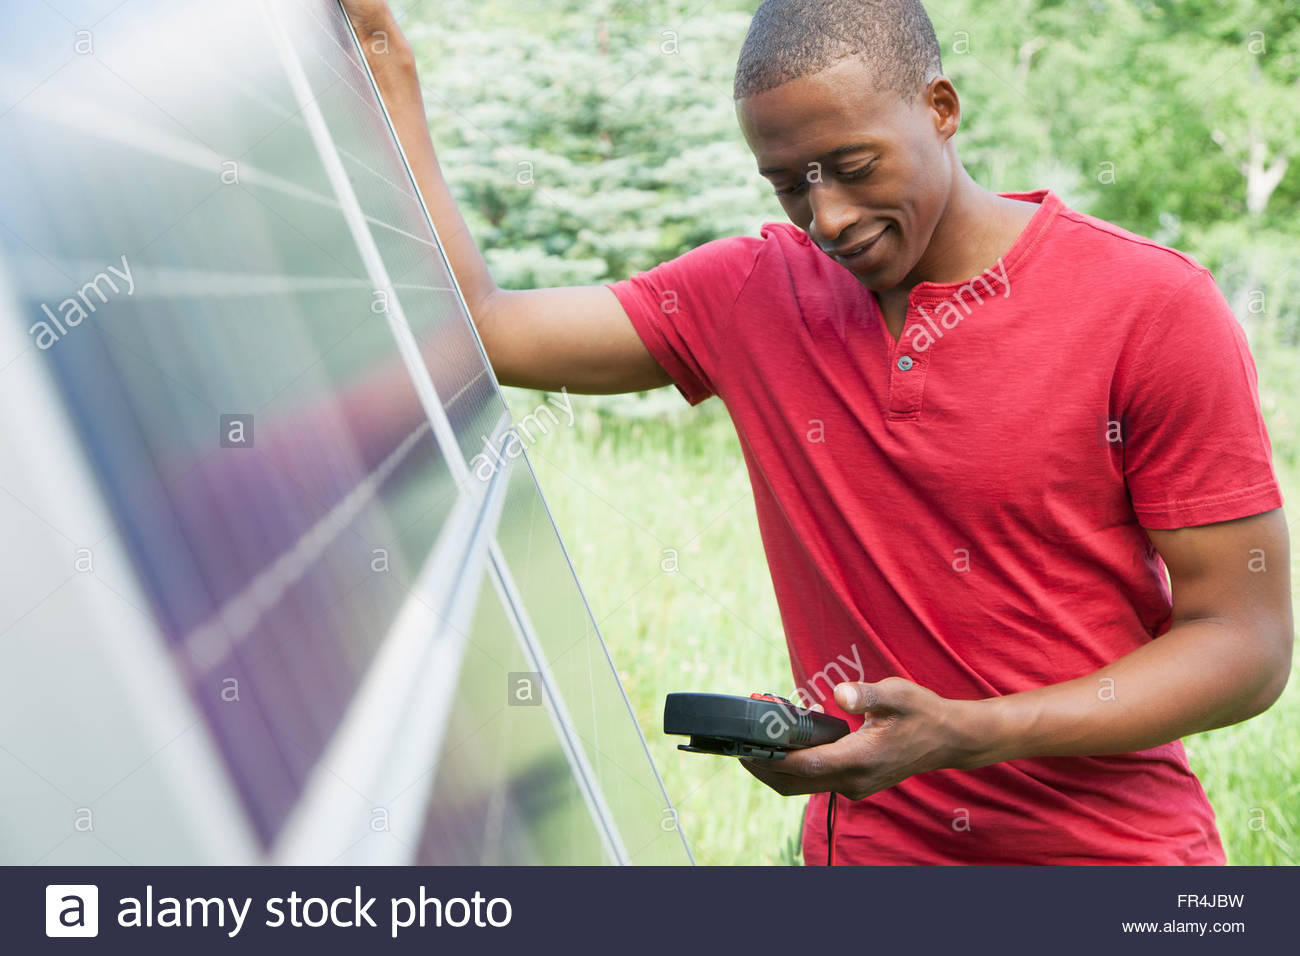 mid-adult man checking solar panel with volt meter - Stock Image